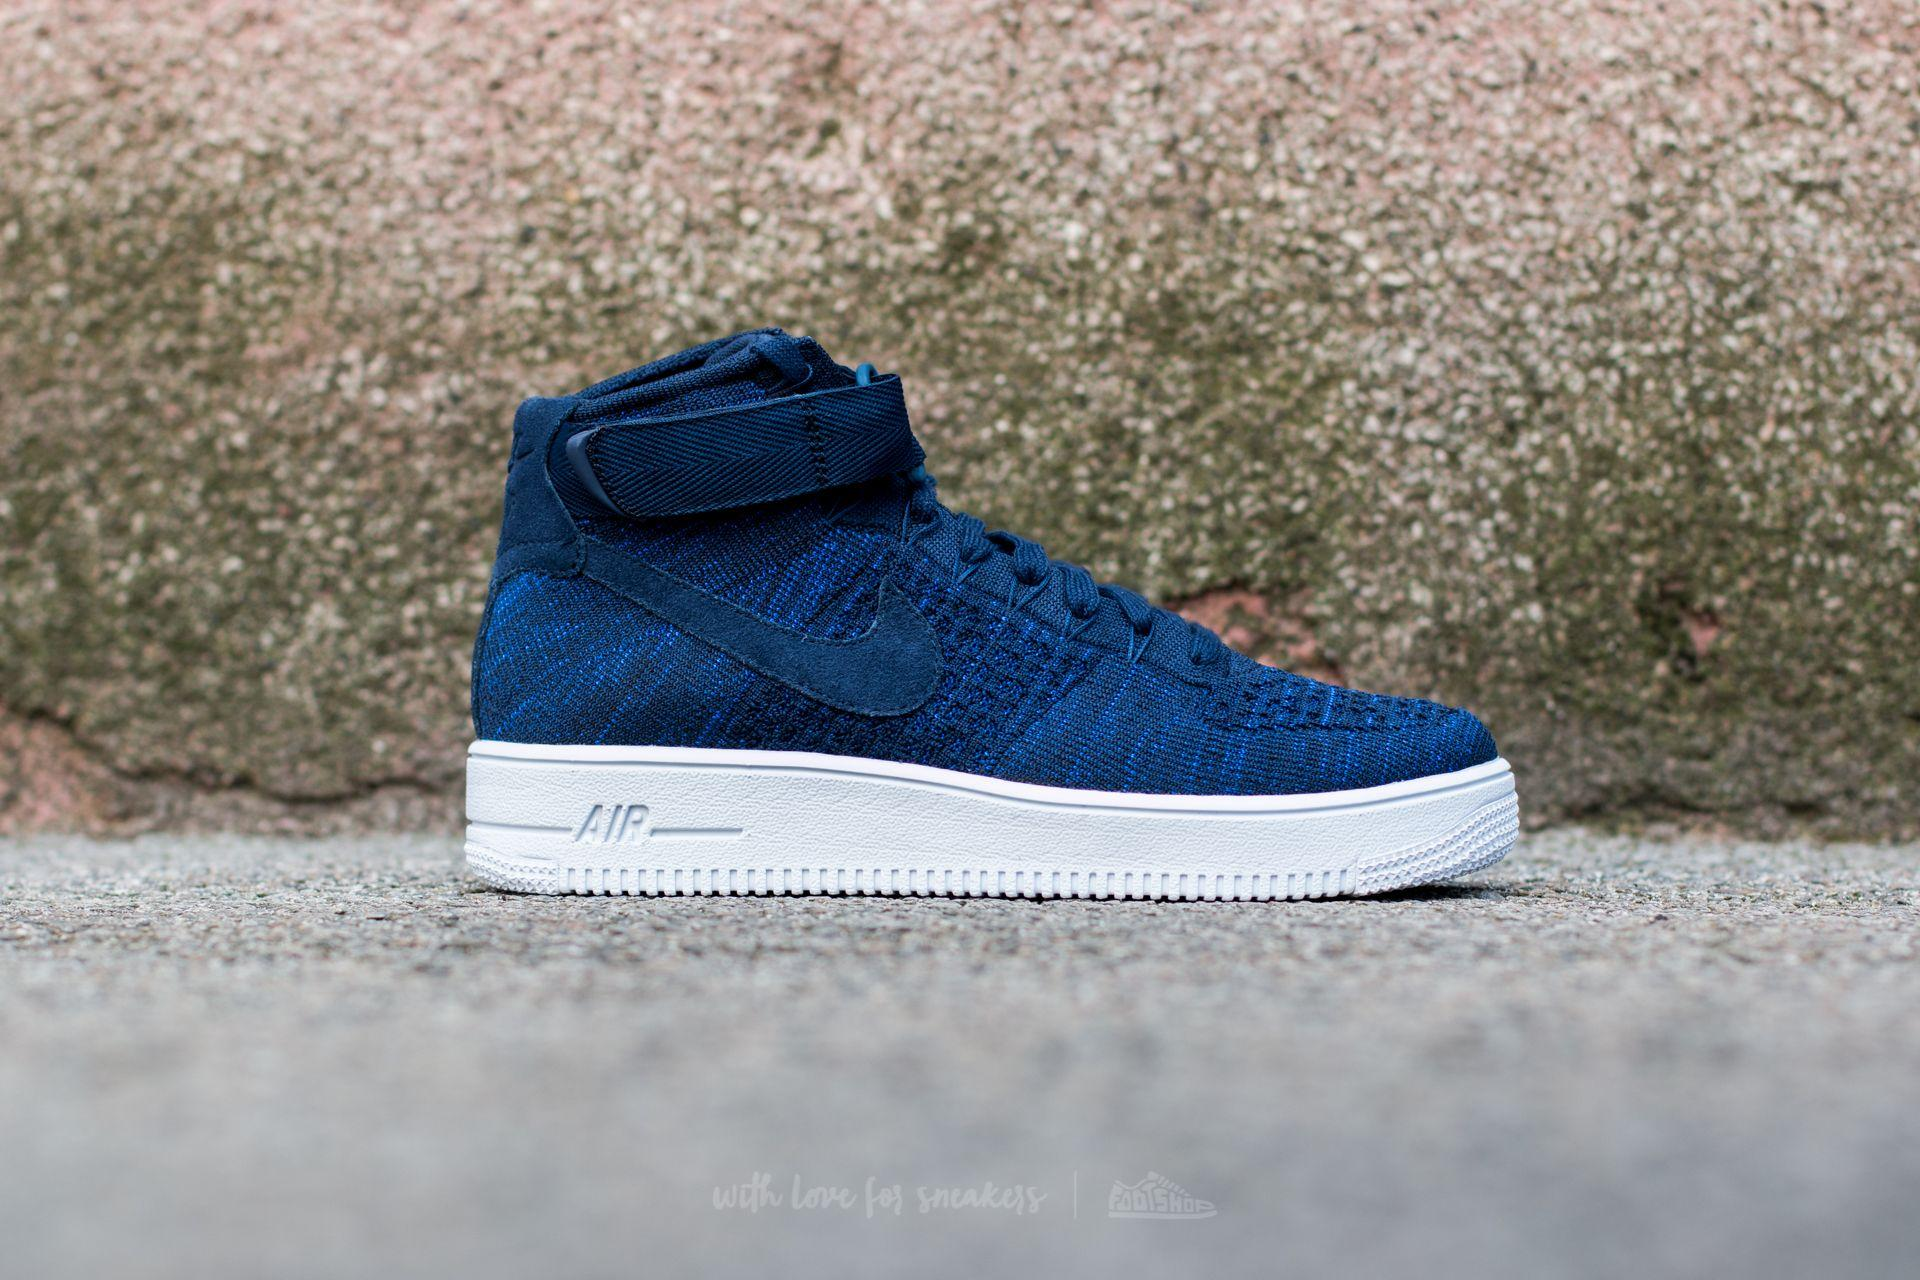 Lyst - Nike Air Force 1 Ultra Flyknit Mid College Navy  College Navy ... 0415d840f